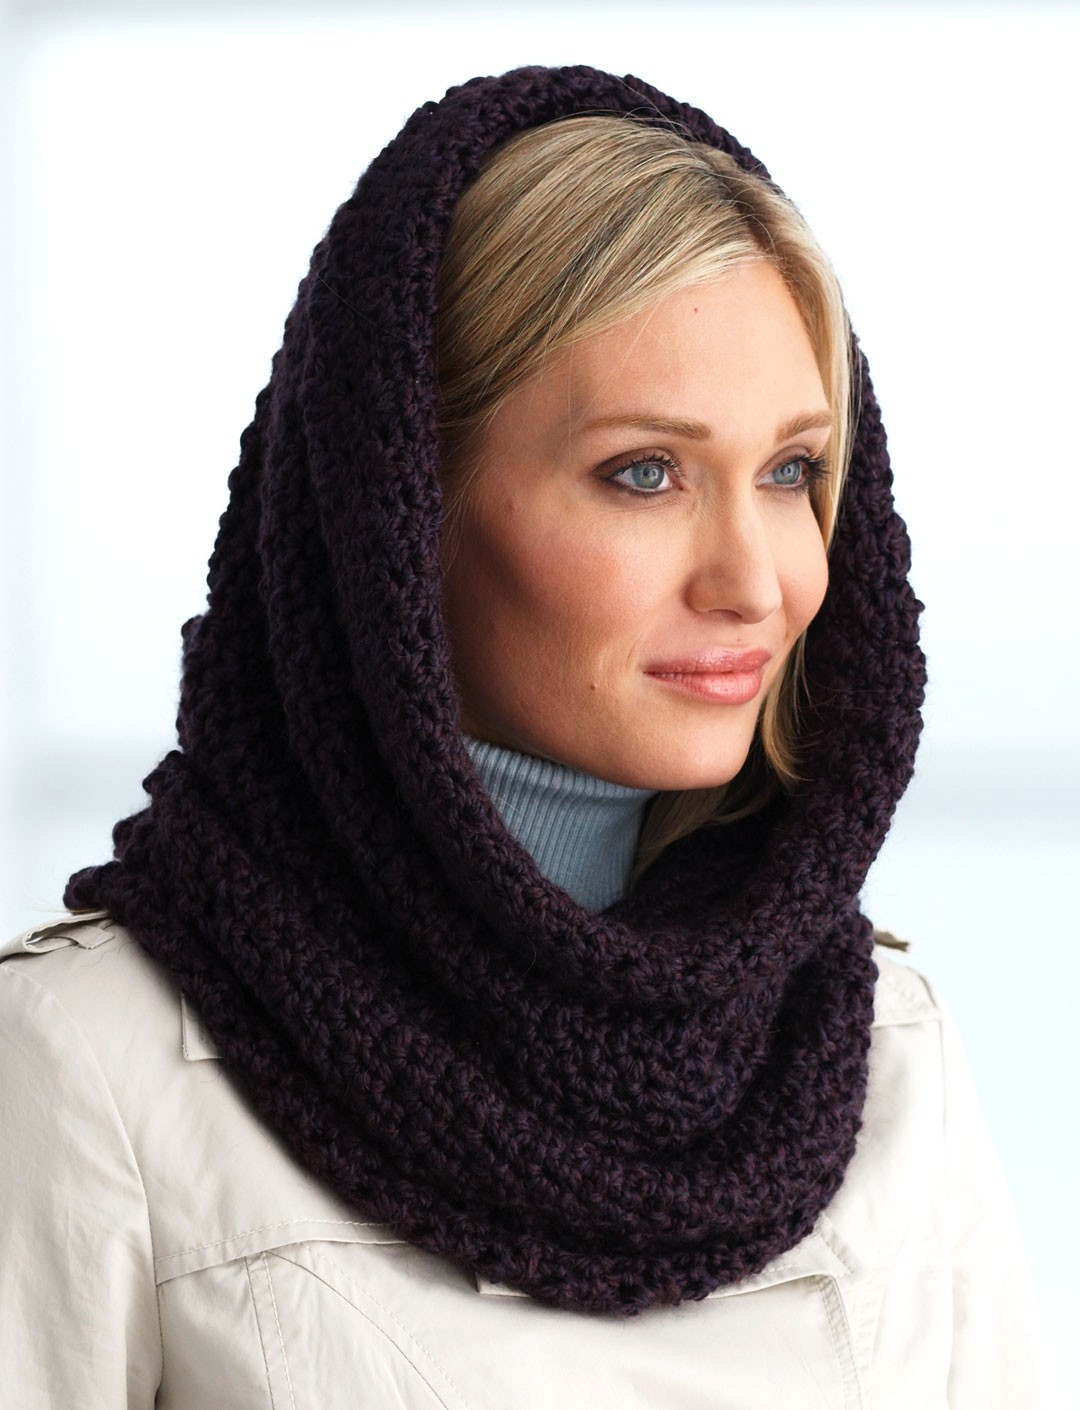 Free Knitting Patterns For Women s Cowls : Bernat Hooded Cowl (Pattern) Yarnspirations